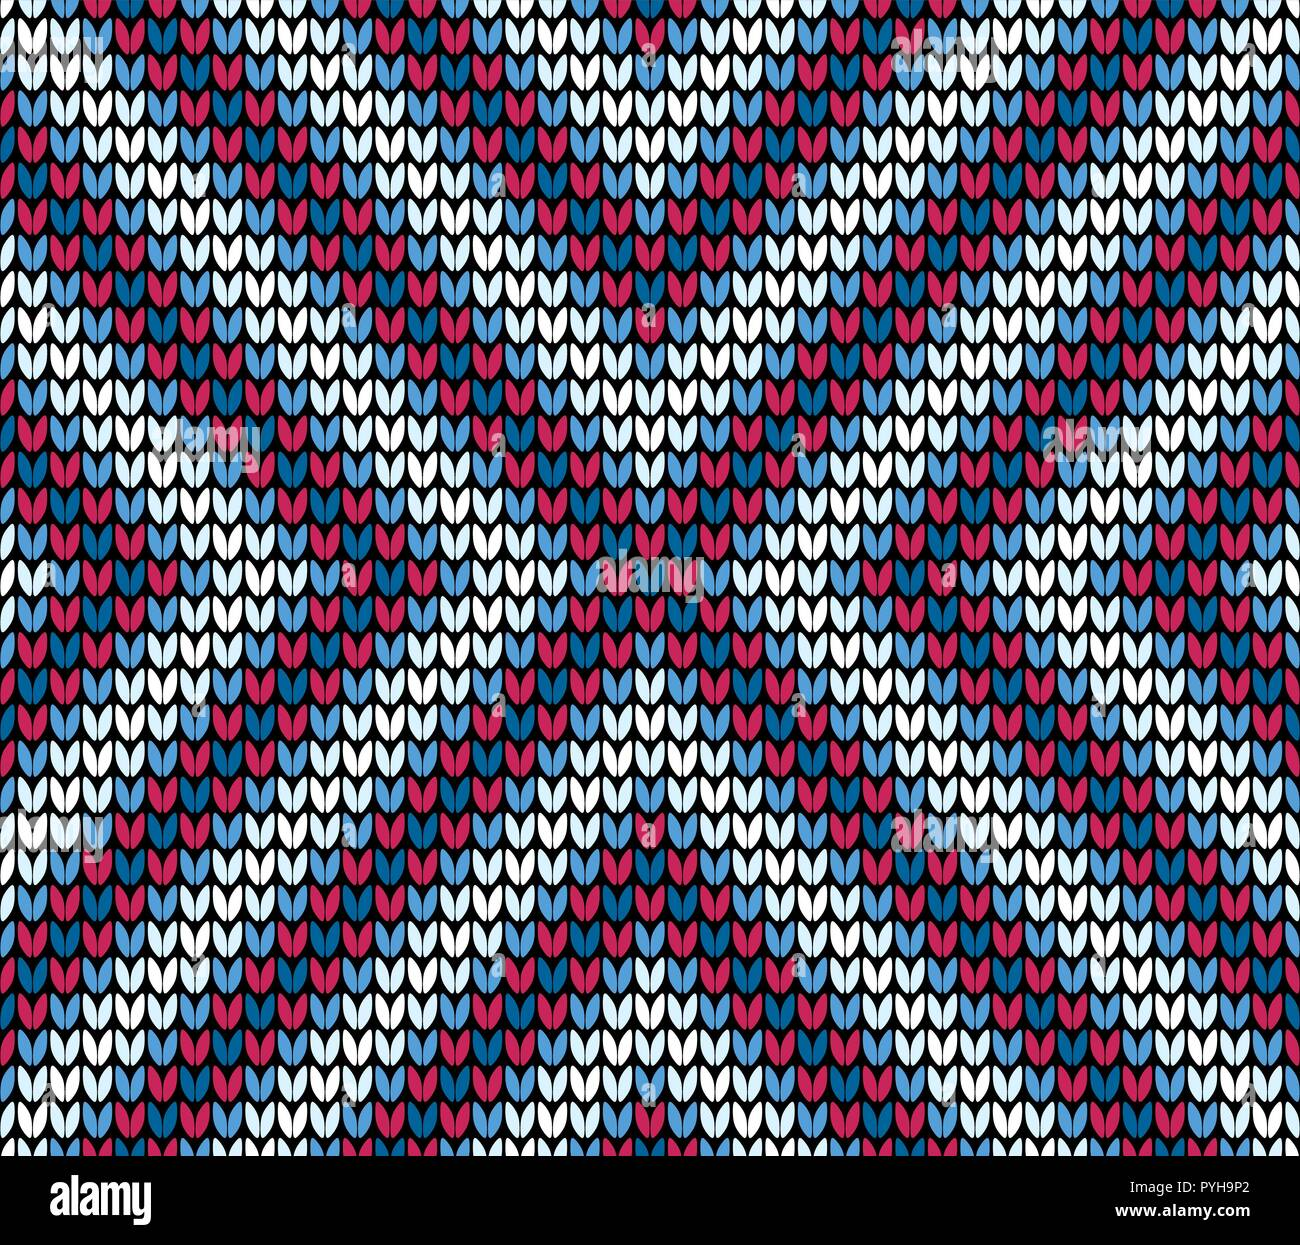 Abstract blue and red seamless knitting pattern background - Stock Vector